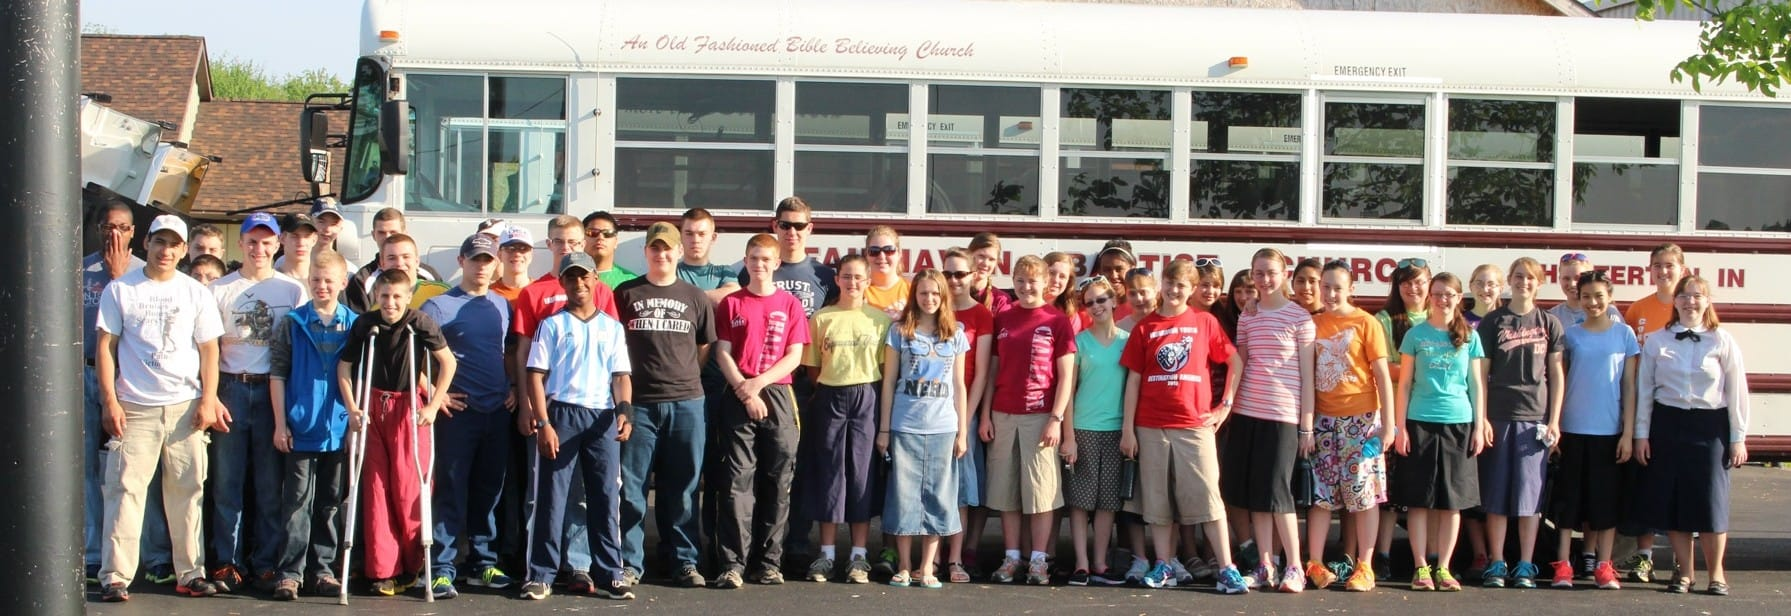 Fairhaven Baptist Church Youth Destination America 2015-5